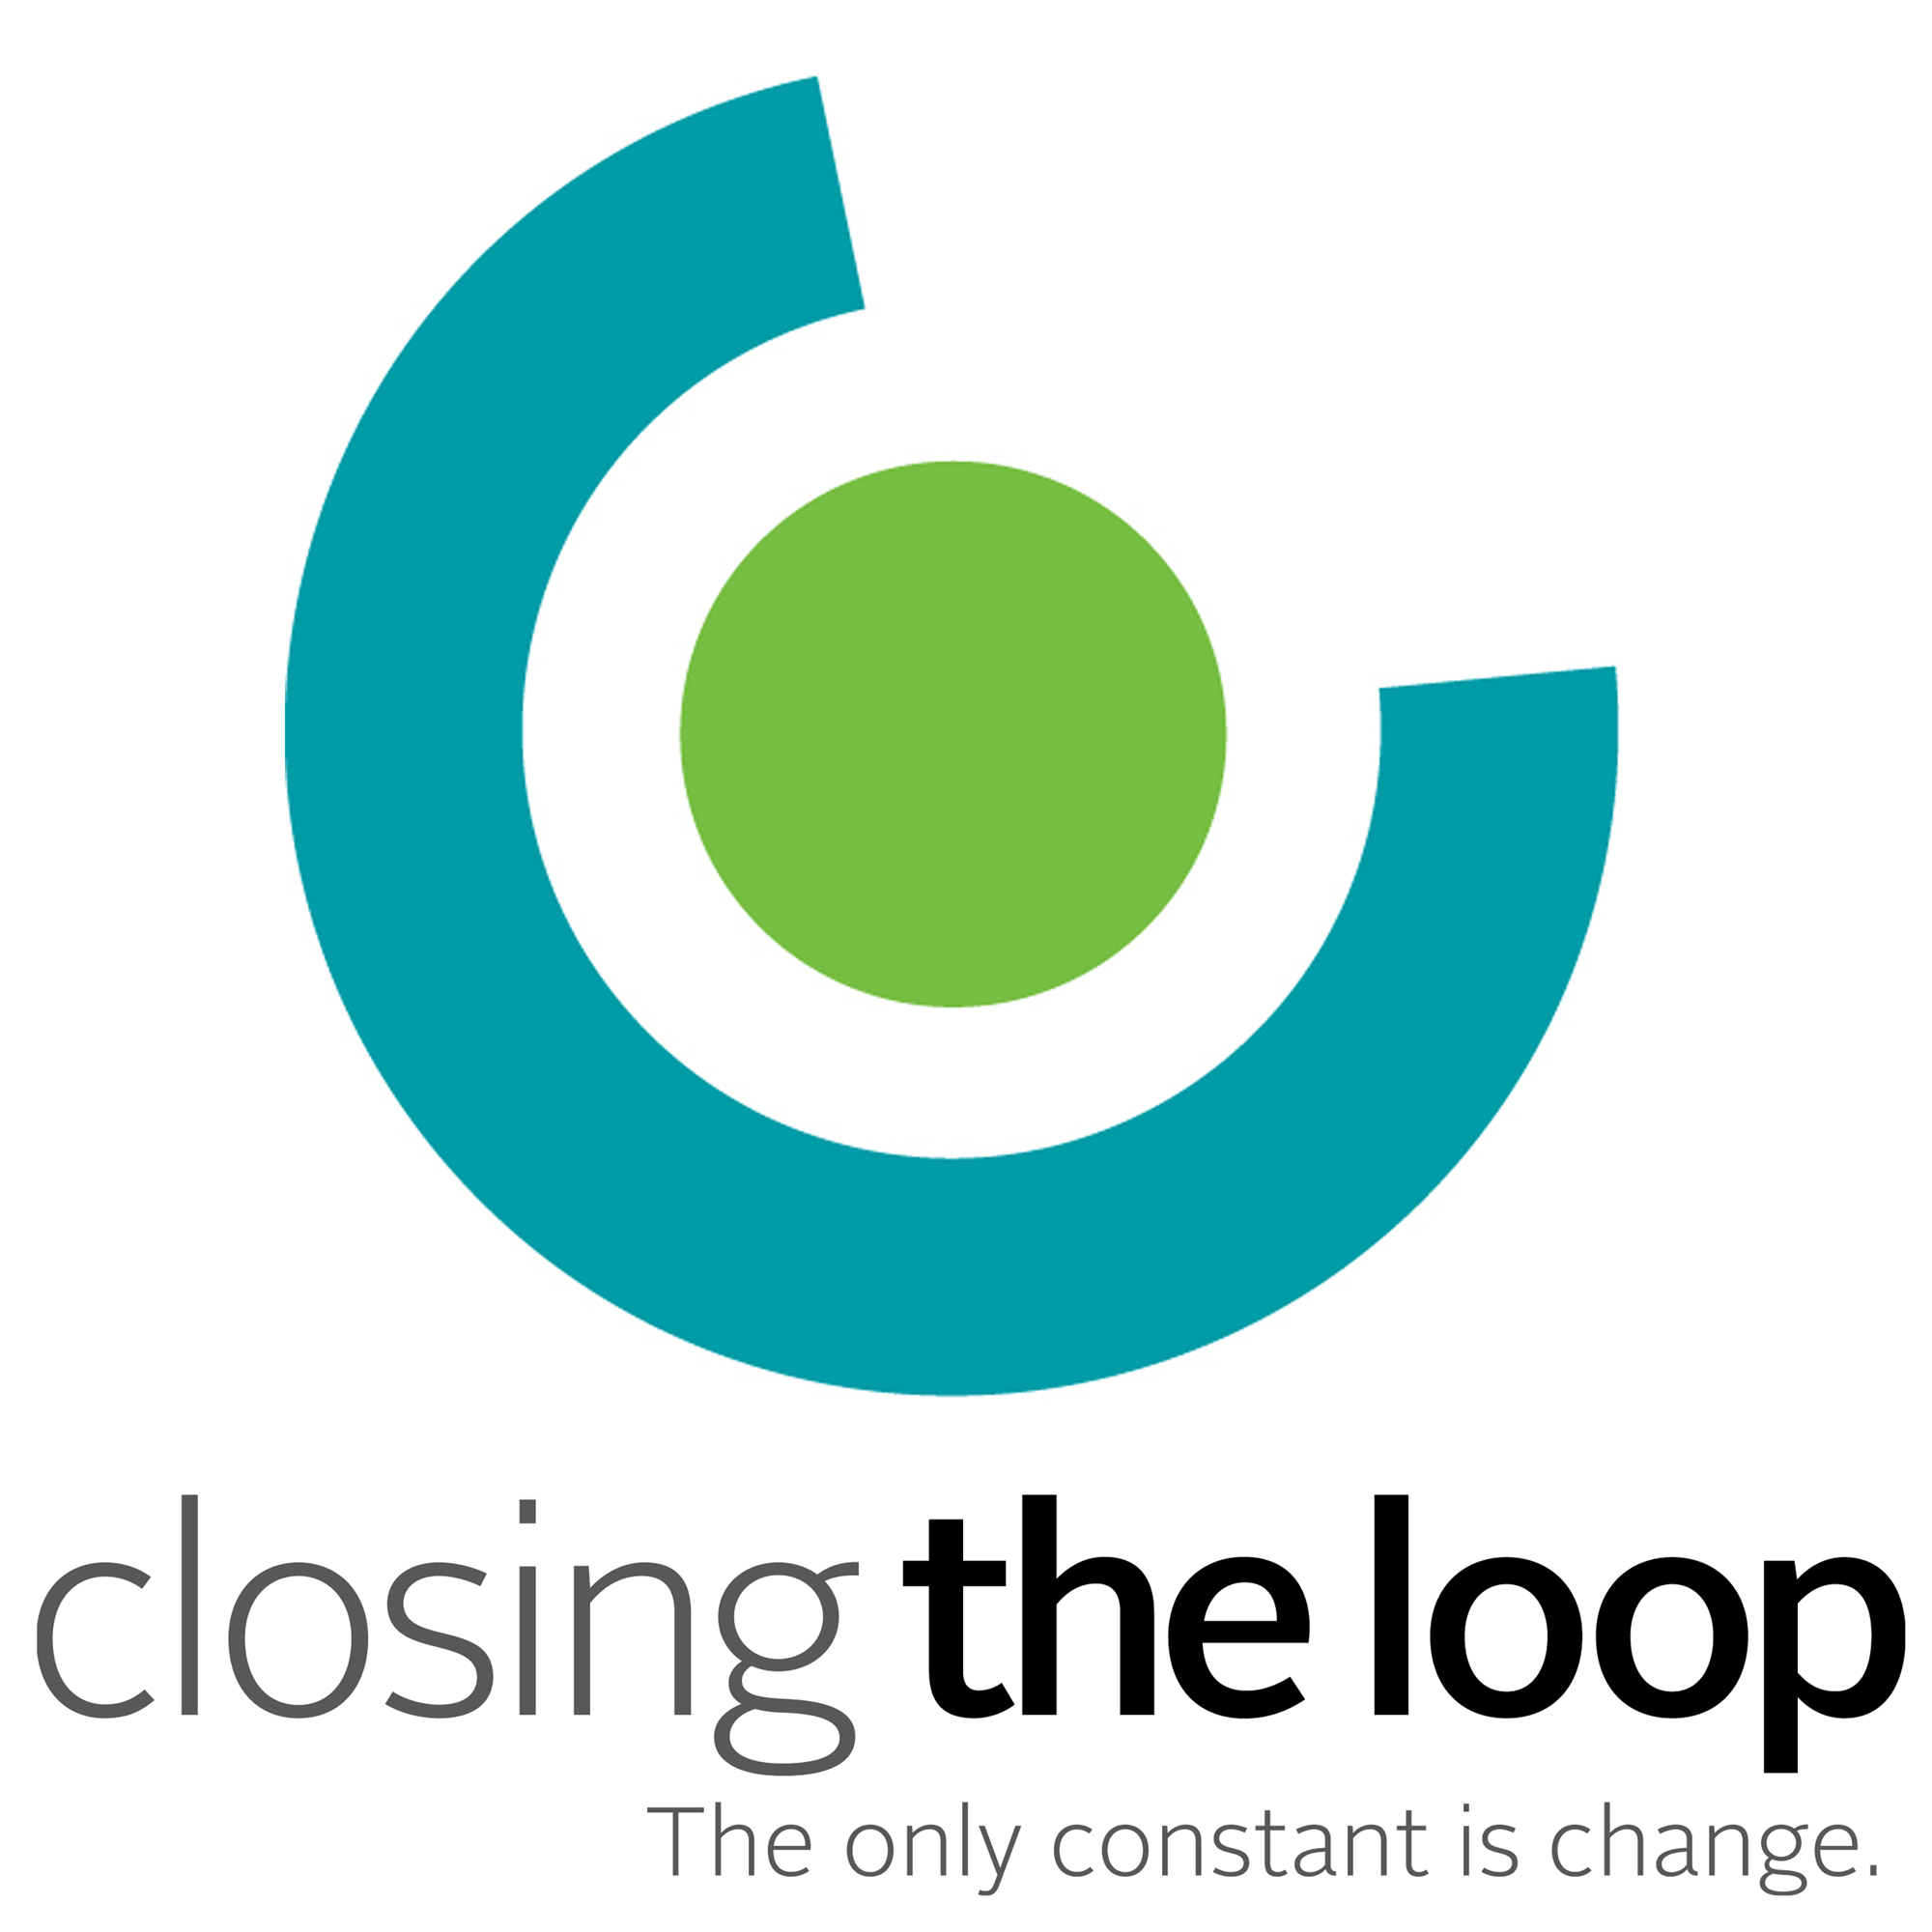 What is Closing The Loop? Live Sustainably. As we grow in space and as a company we are proud to work with the people of this community on the epidemic of food waste. From source reduction to composting practices, we are committed to ending hunger and changing the paradigm on food waste.5/5(1).